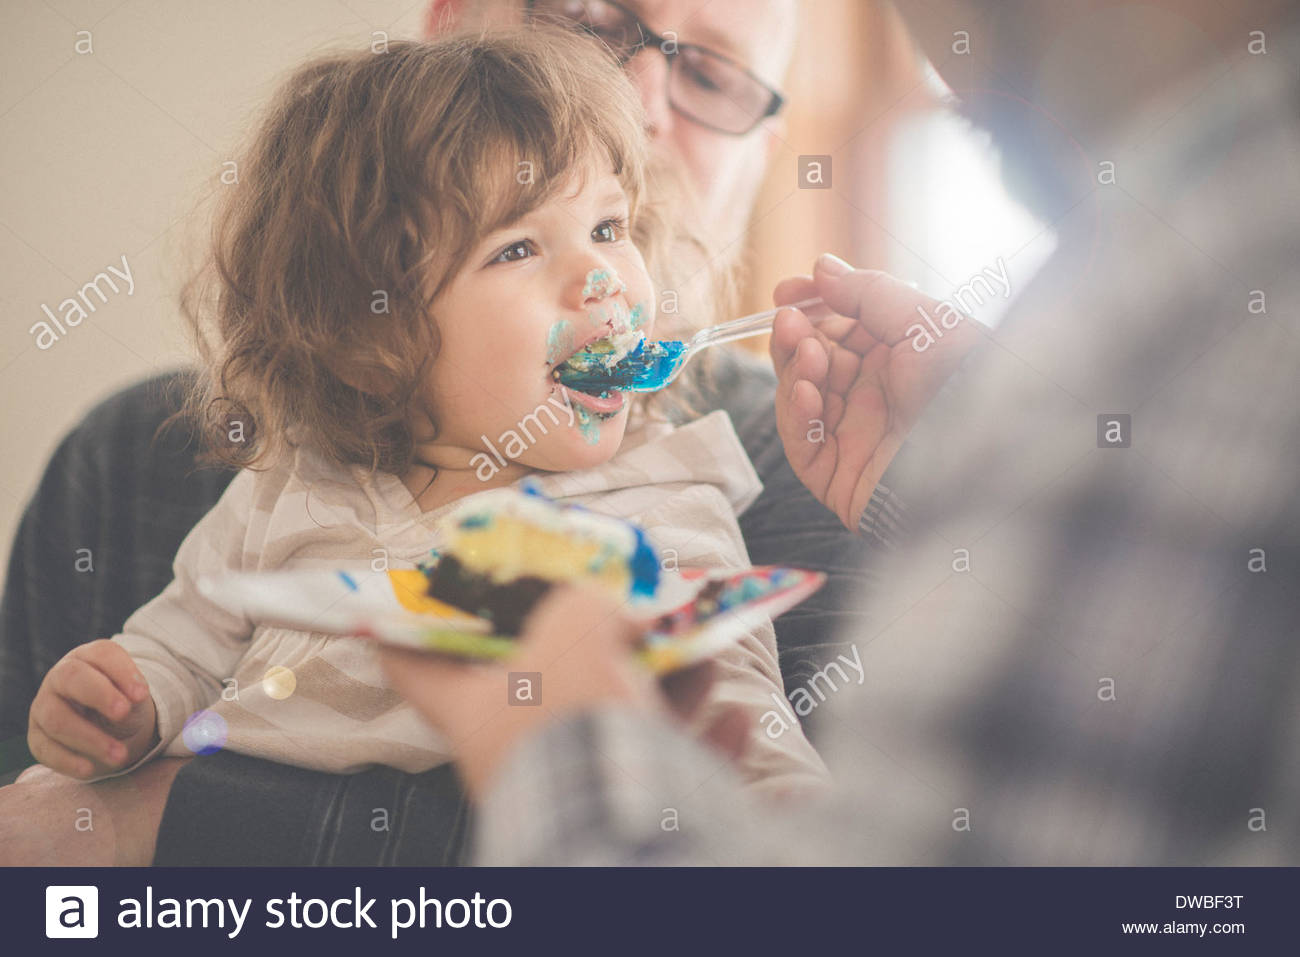 Female toddler being fed with birthday cake - Stock Image